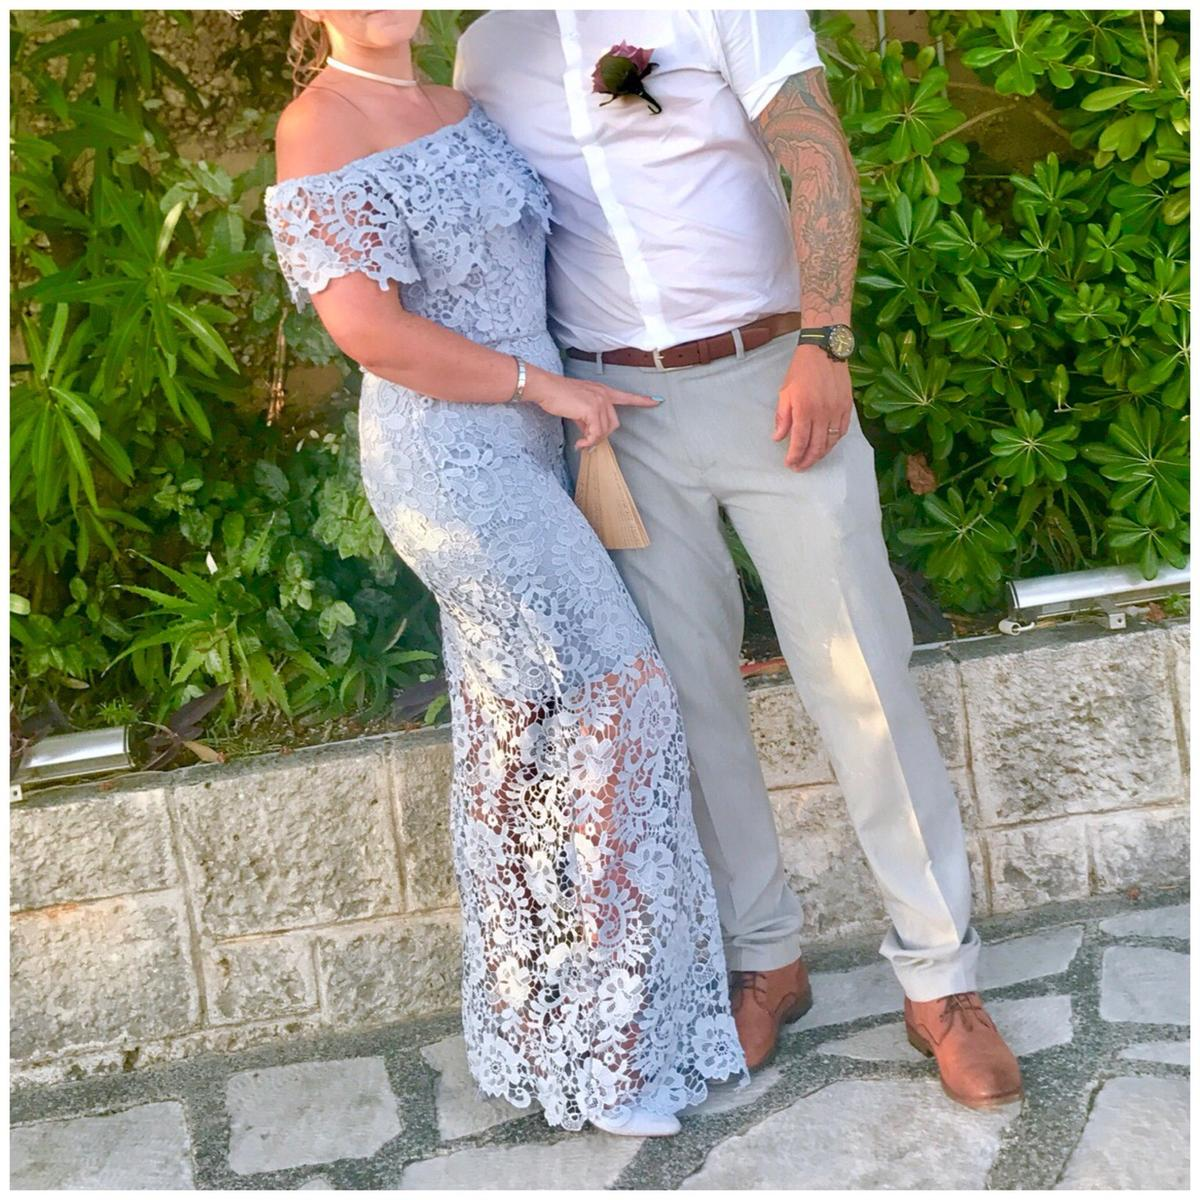 Paper Dolls Maxi Dress Wedding Guest In Chilton For 30 00 For Sale Shpock,Wedding Dress Shops In Miami